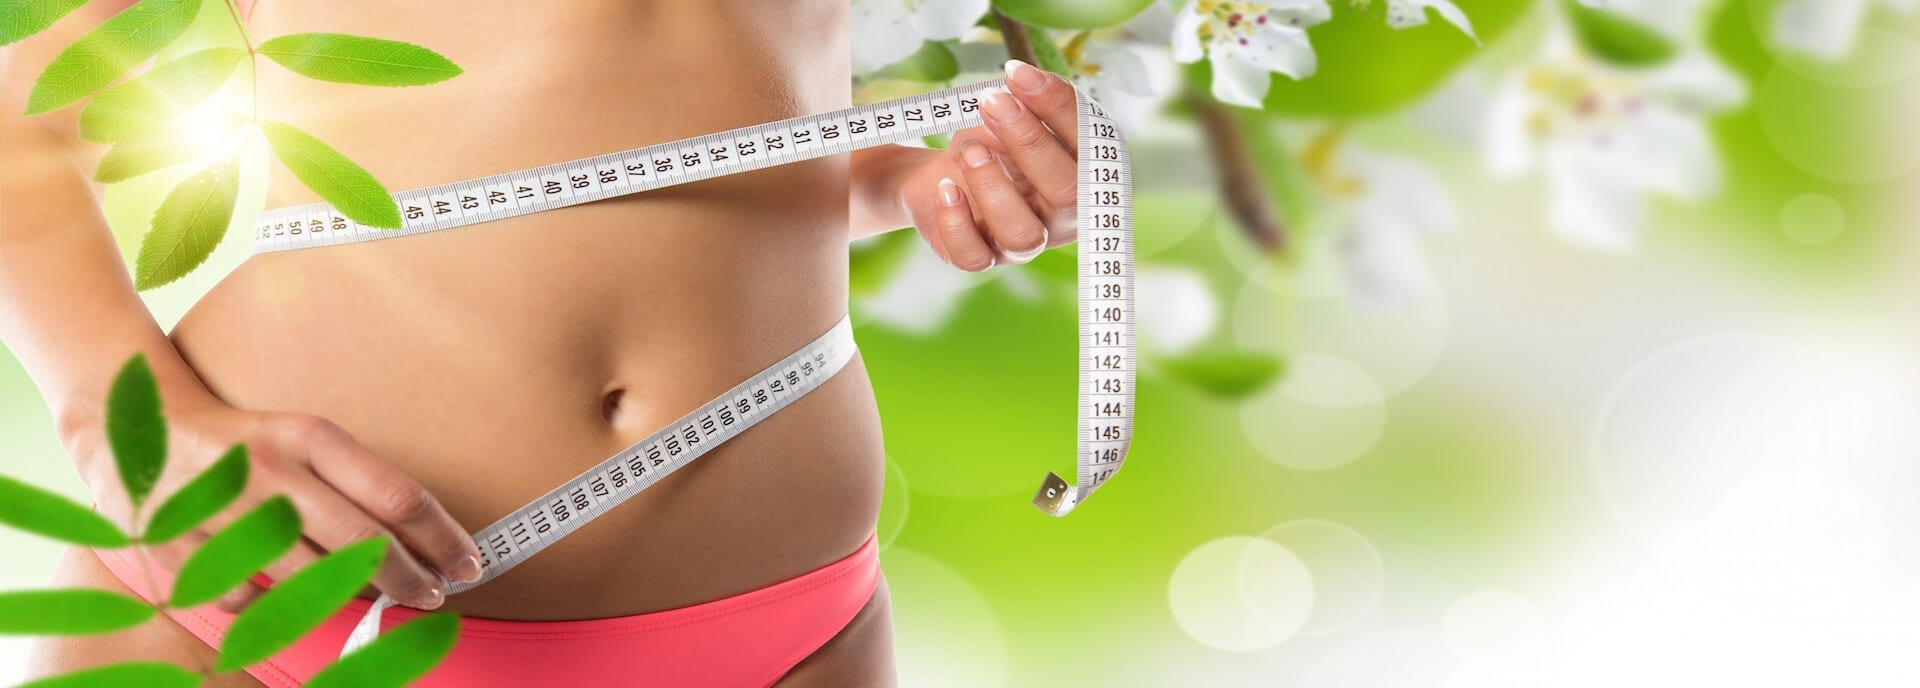 Get Naturopathic Medically Supervised Naturopathic Weight Loss: Mesotherapy & Lipodissolve Dr. Jiwani Naturopathic Physician Vancouver Burnaby Surrey